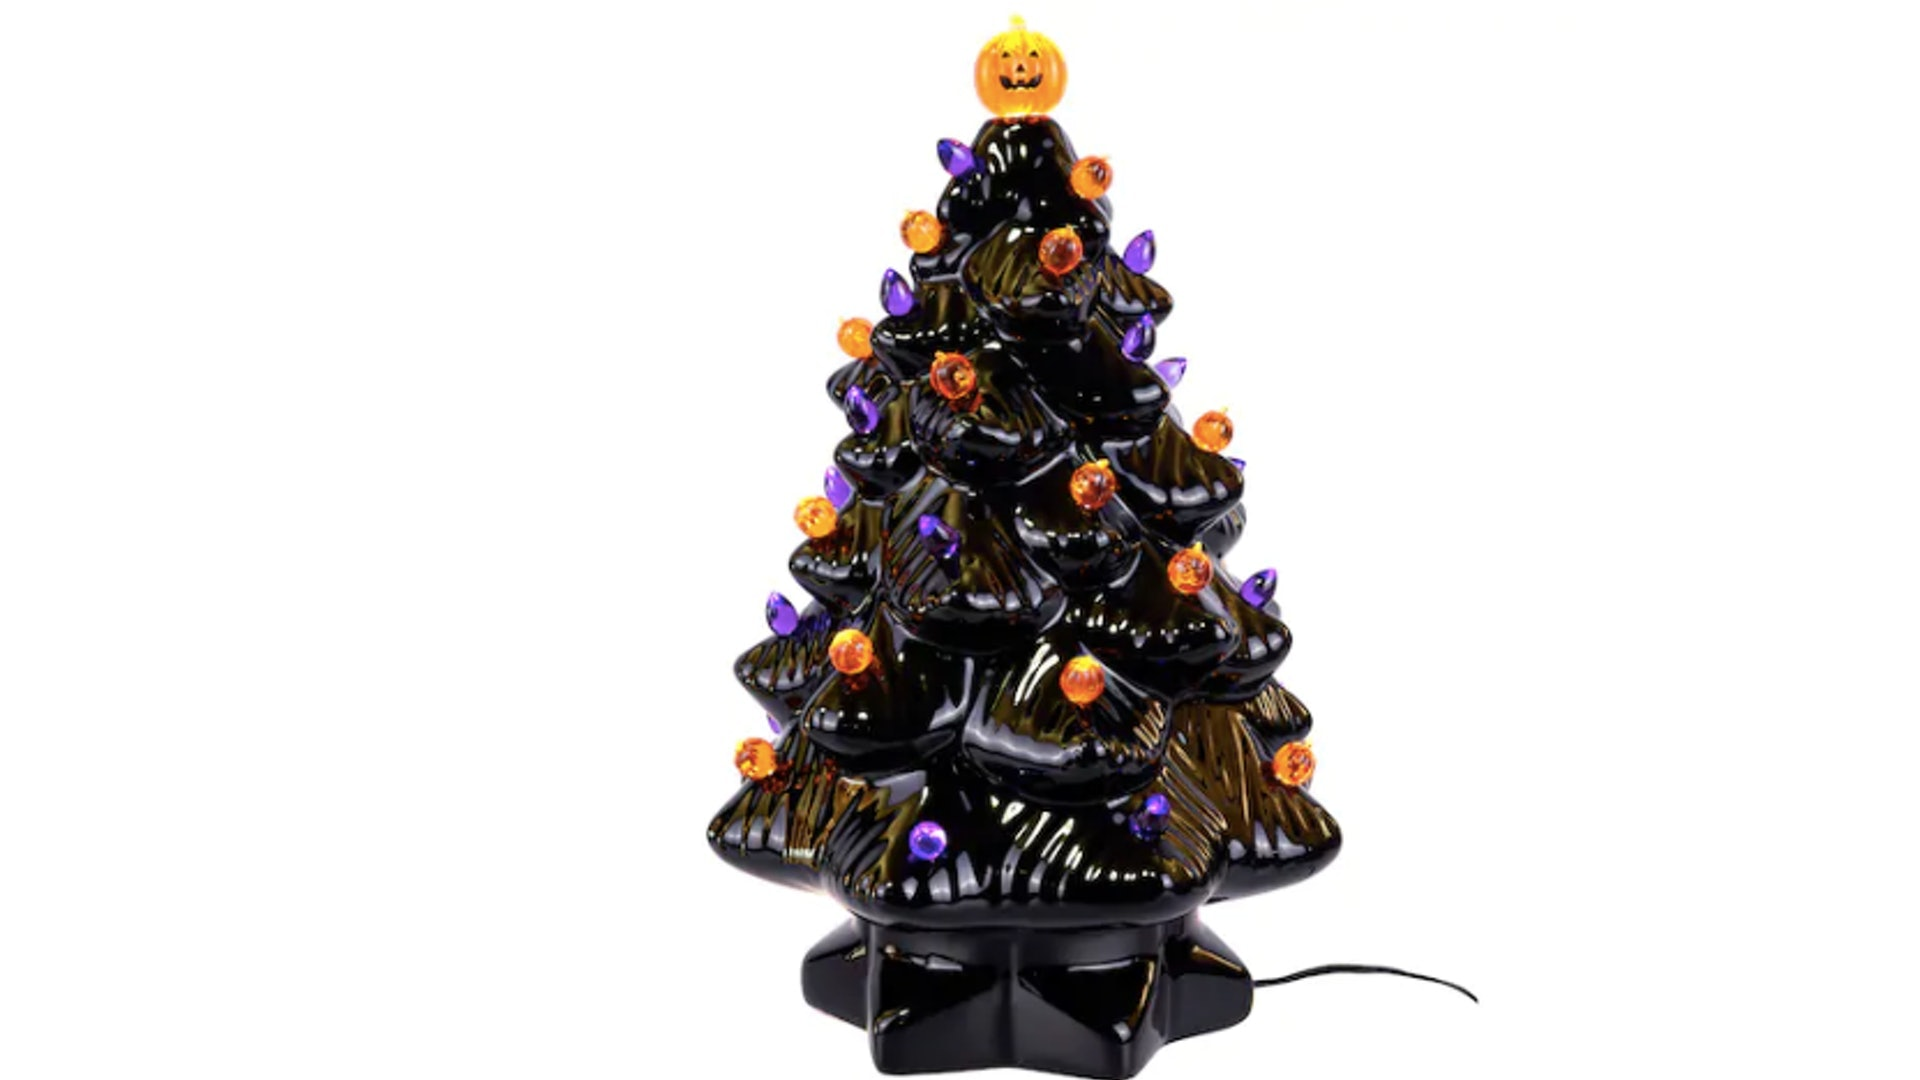 This Ceramic Light Up Halloween Tree From Michaels Is Bound To Sell Out Again